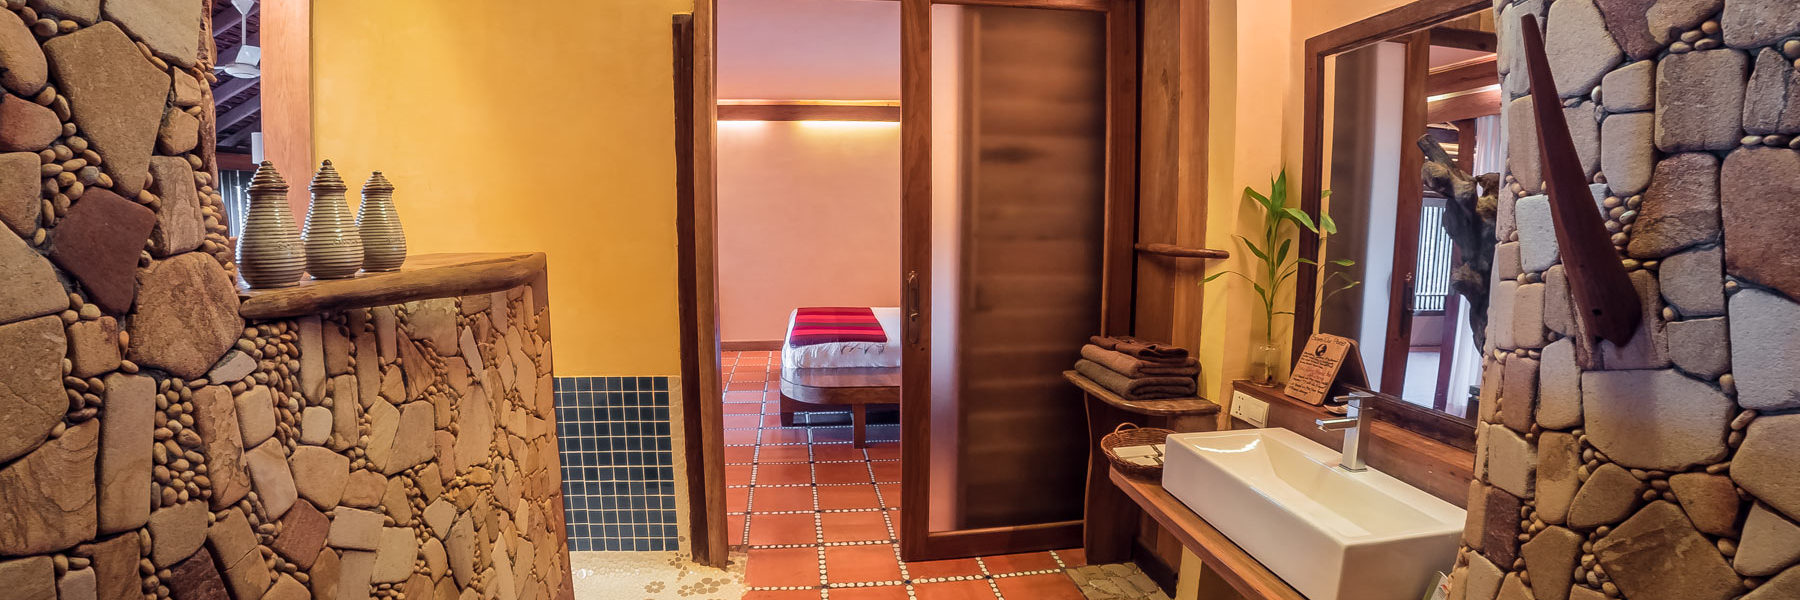 Residence Penthouse bathroom, designed with mineral stones and doors to the double bedroom and the private terrasse in Veranda Natural Resort, Kep - Cambodia.